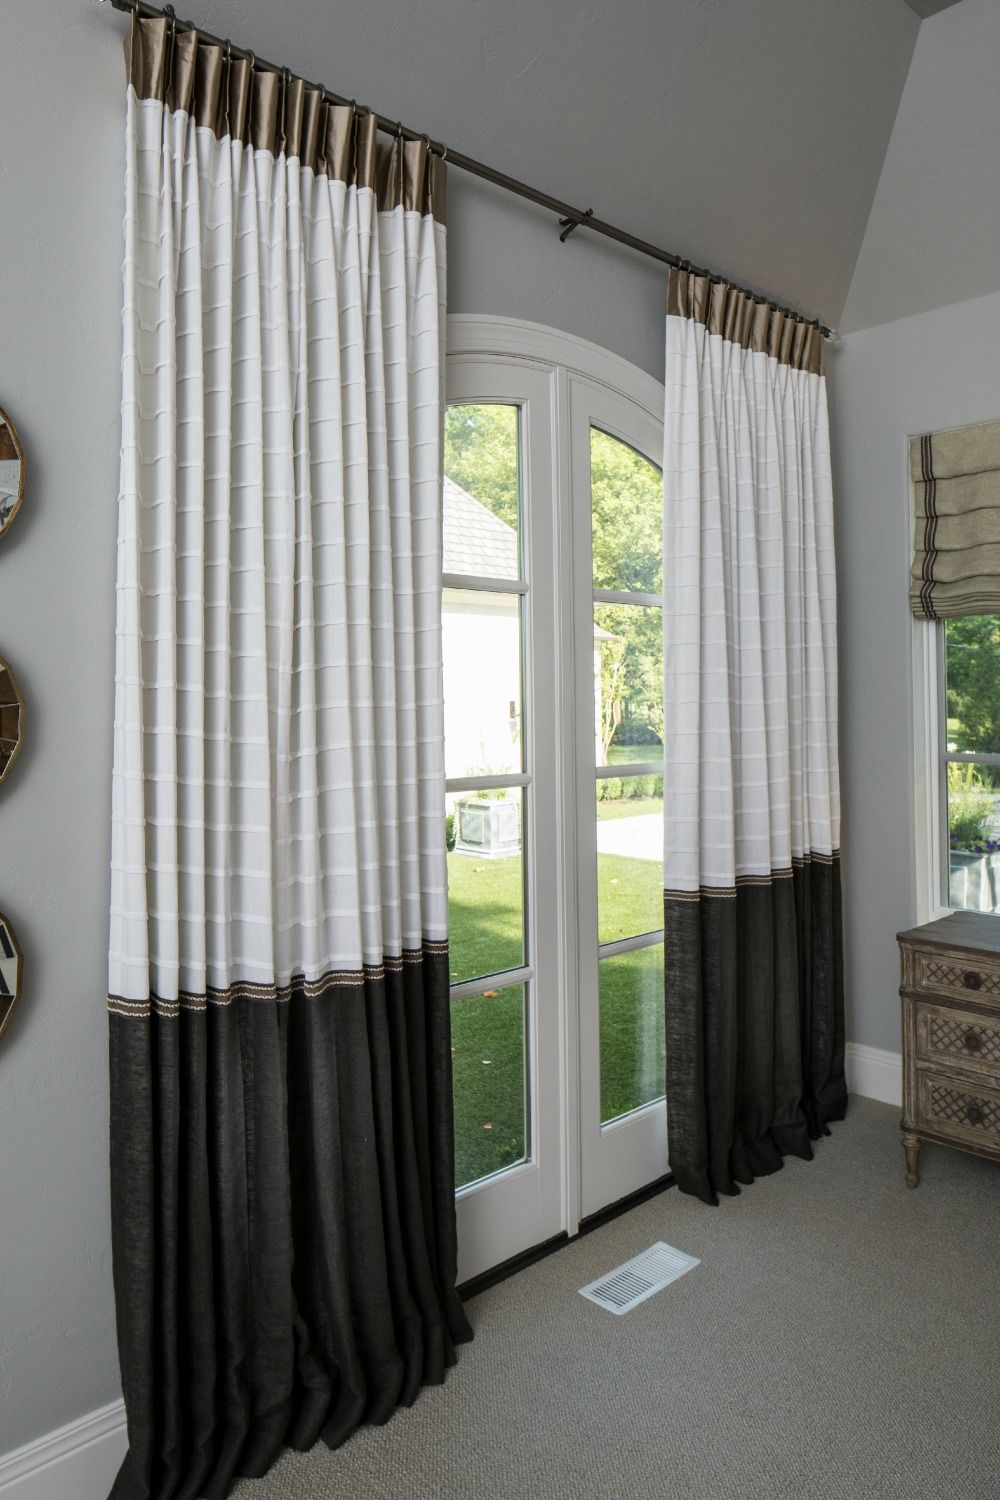 Top 5 Reasons To Use An Expert For Window Treatments With Images